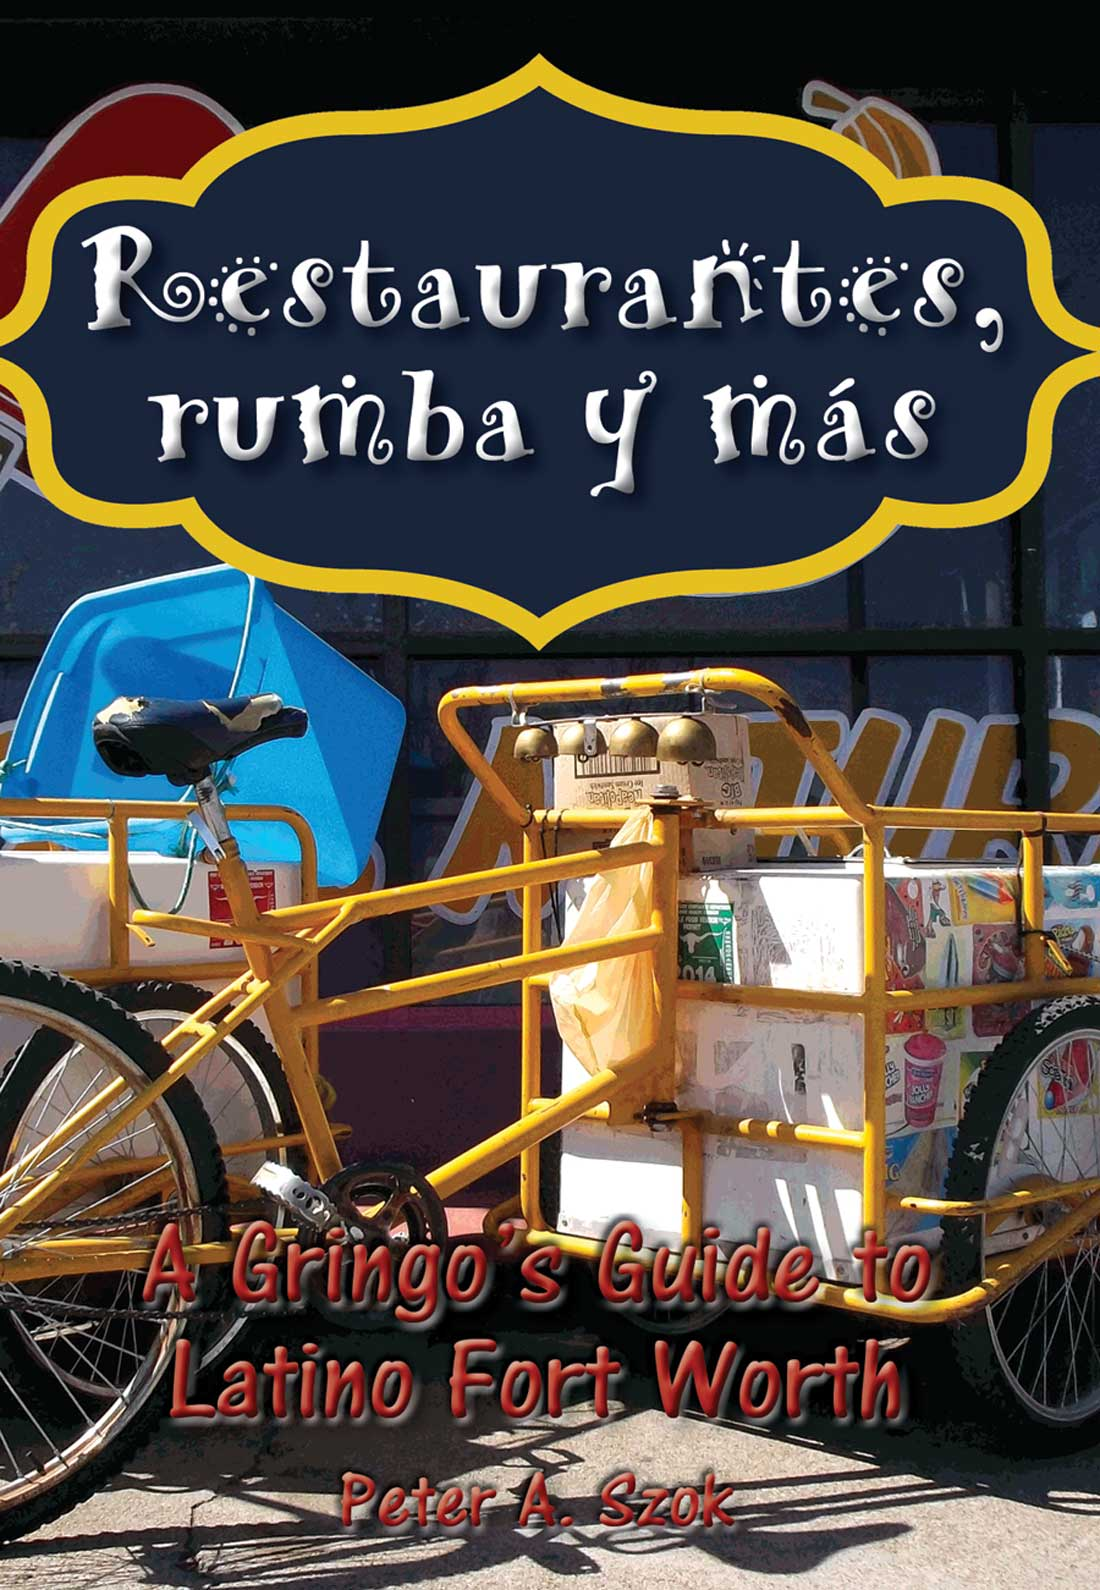 Restaurantes, rumba y más: A Gringo's Guide to Latino Fort Worth, by Peter Szok. TCU Press, $9.95, 132 pps.